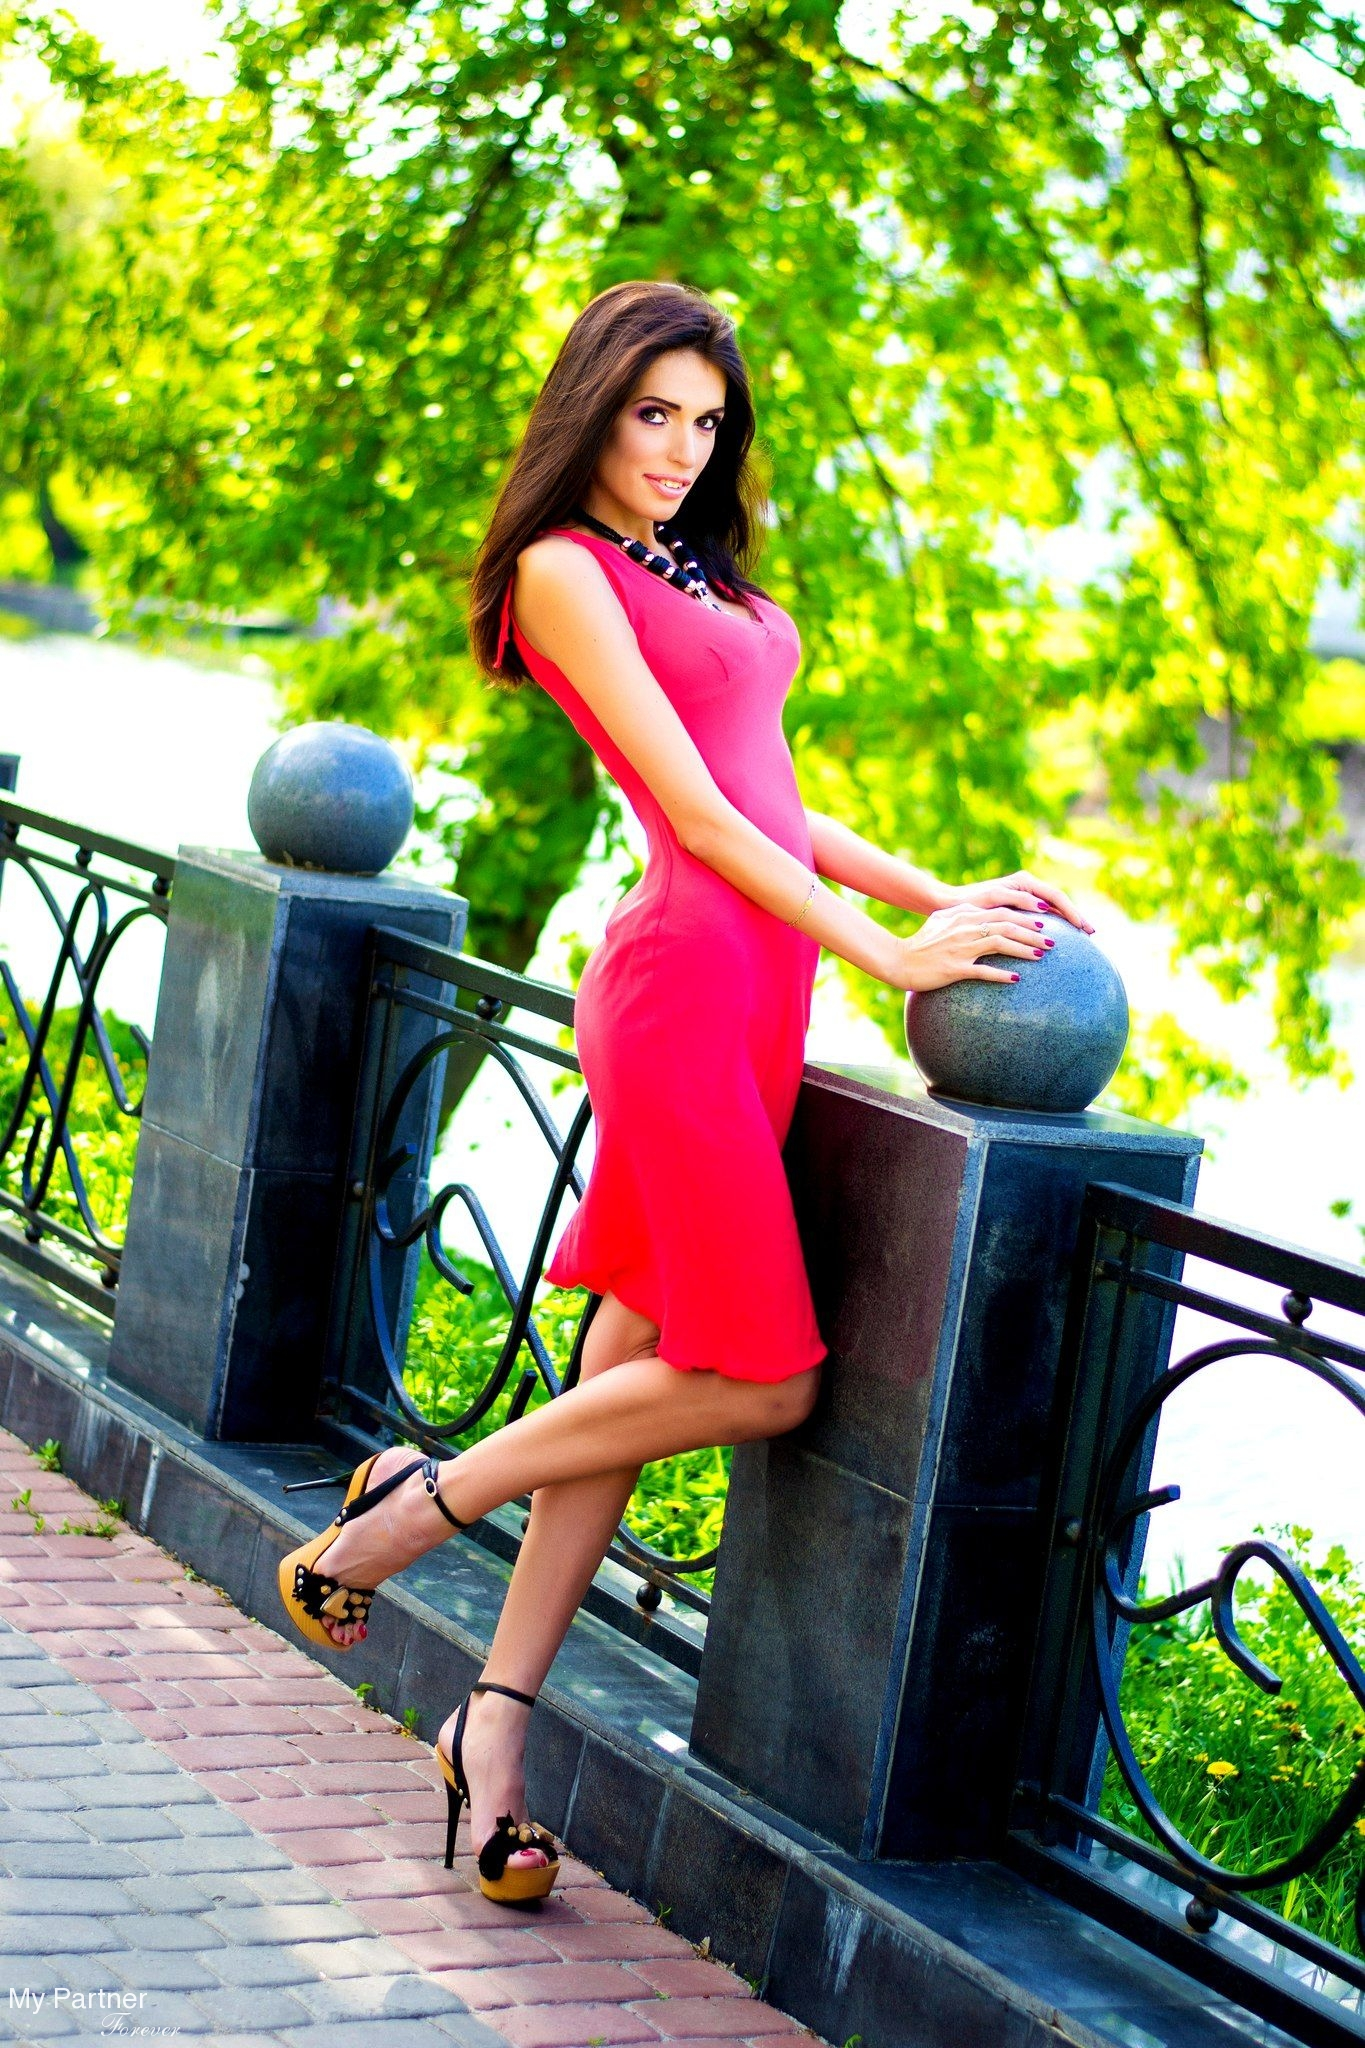 regina dating site Discover filipino friends date, the totally free dating site for single filipinos and those looking to meet local filipinos never pay anything, meet filipinos for.